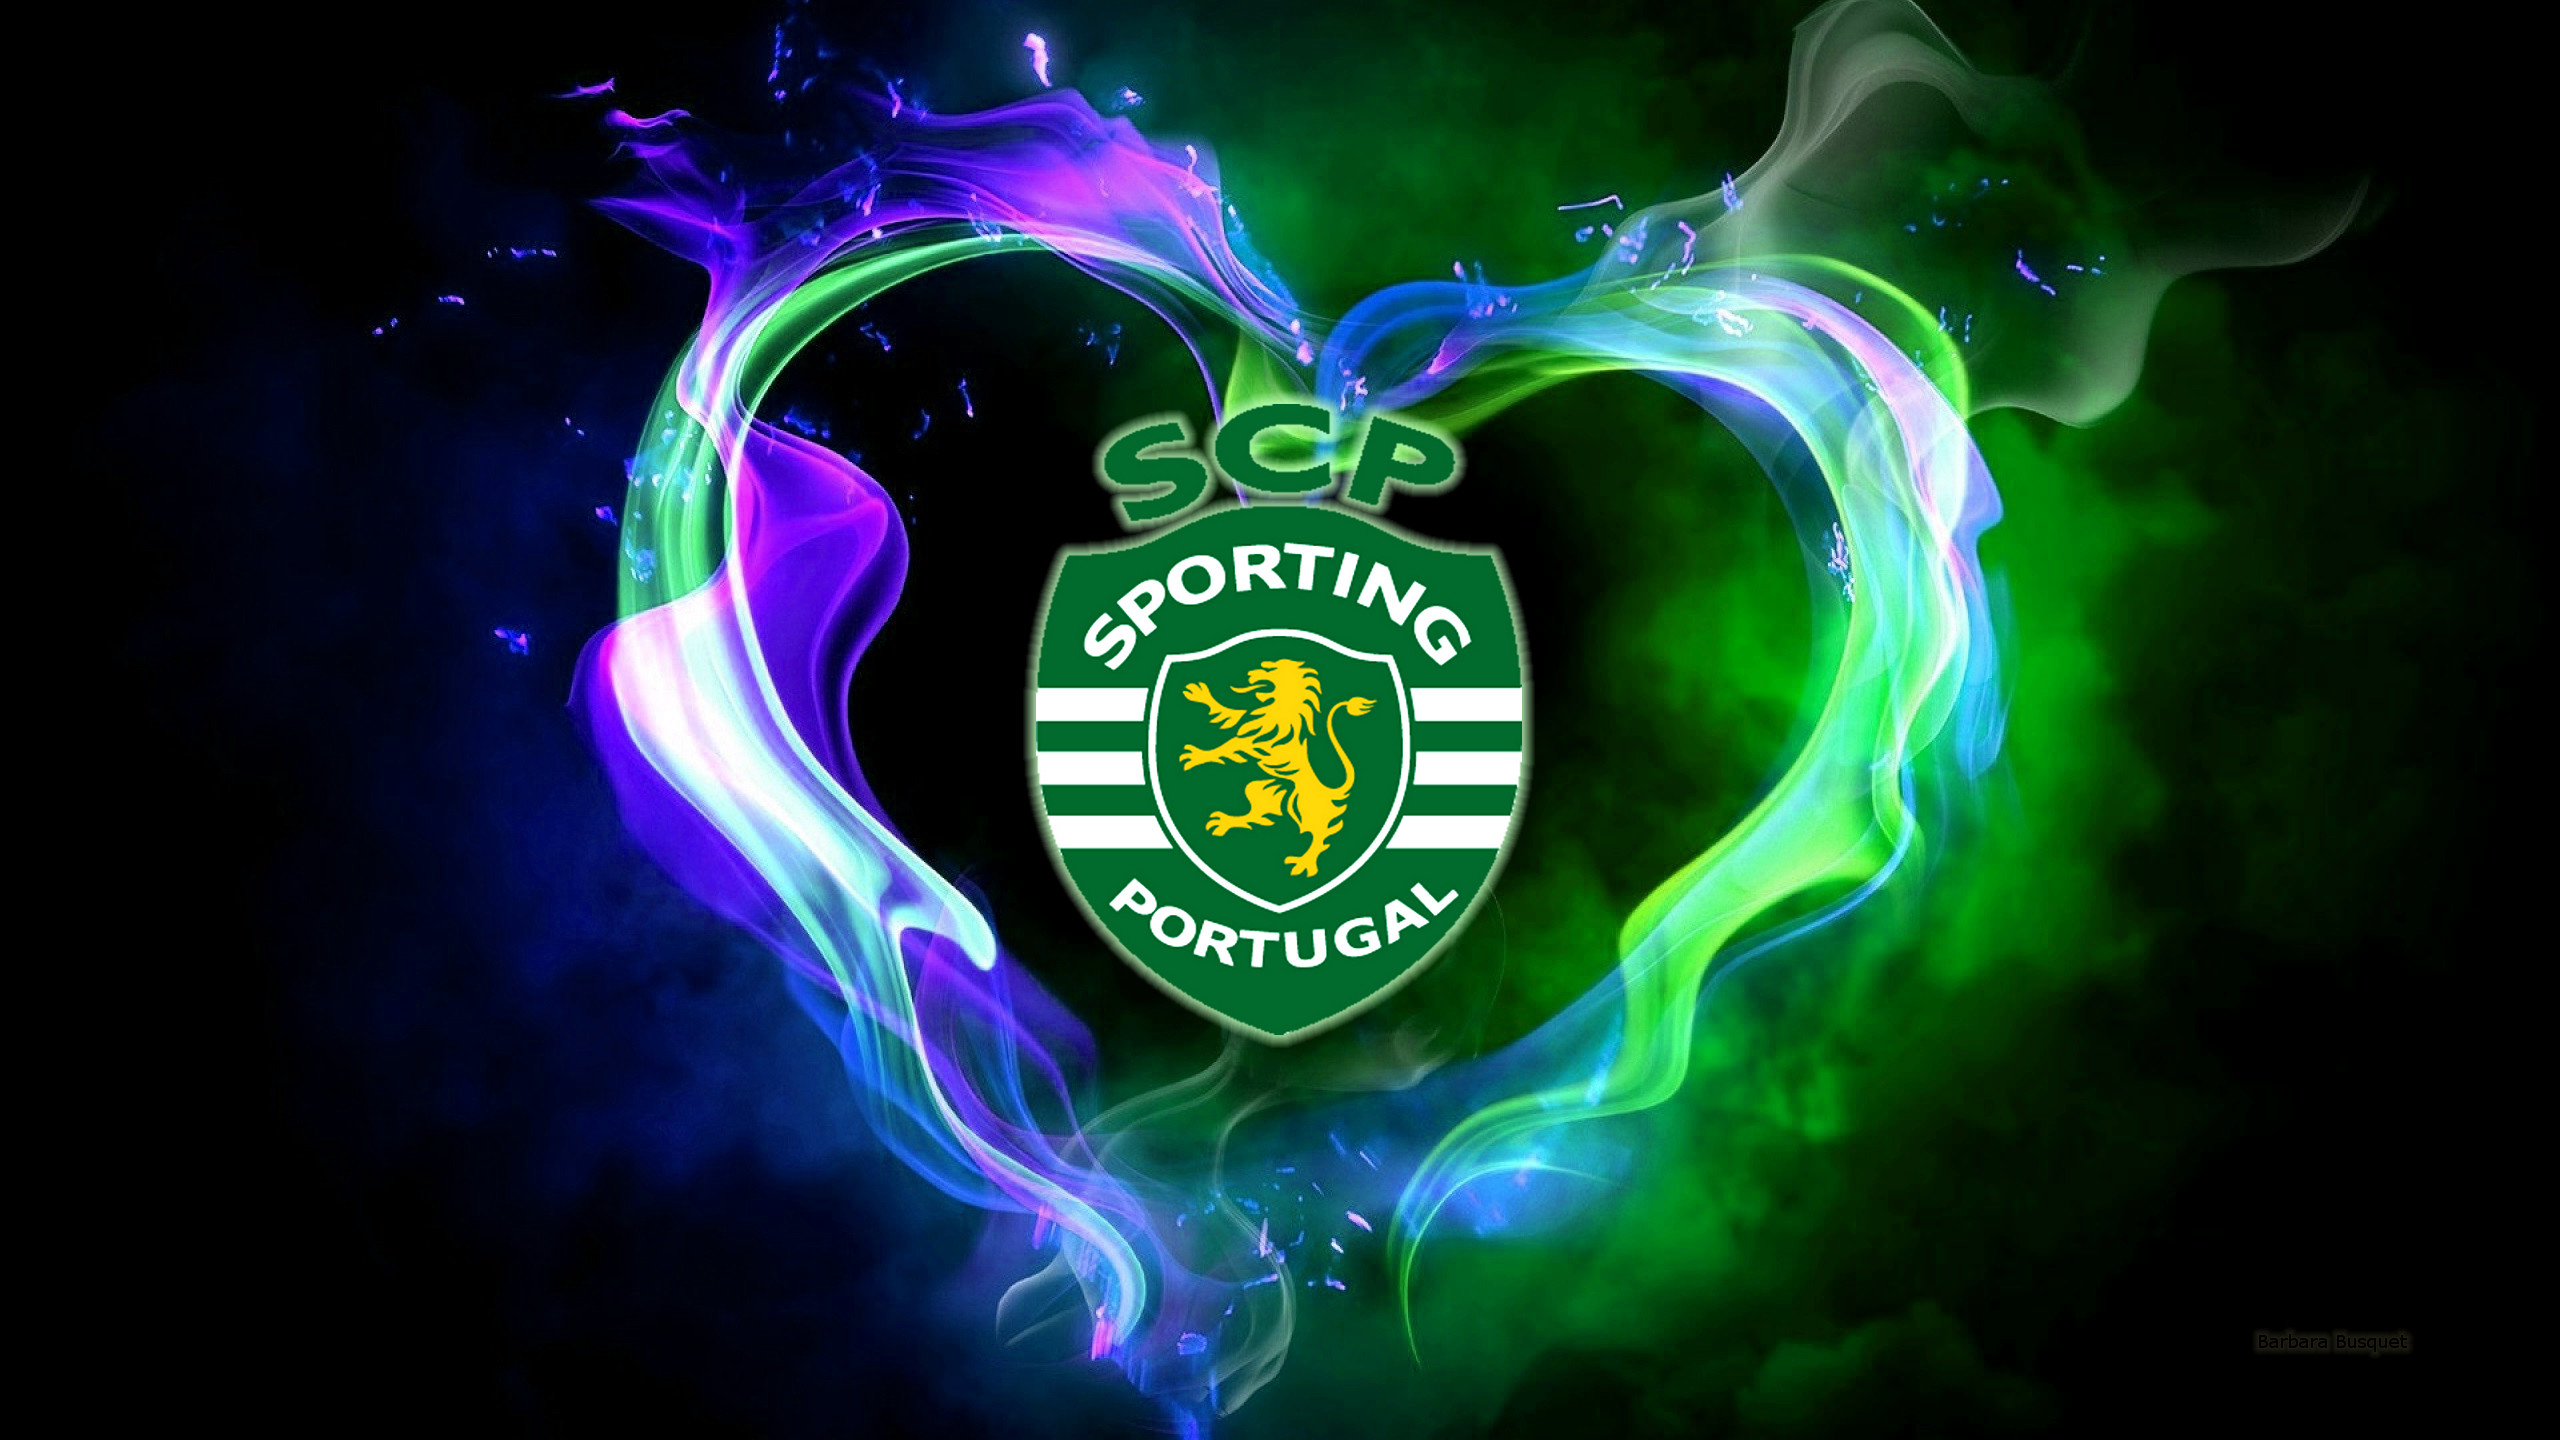 Sporting Cp Wallpapers Barbaras Hd Wallpapers